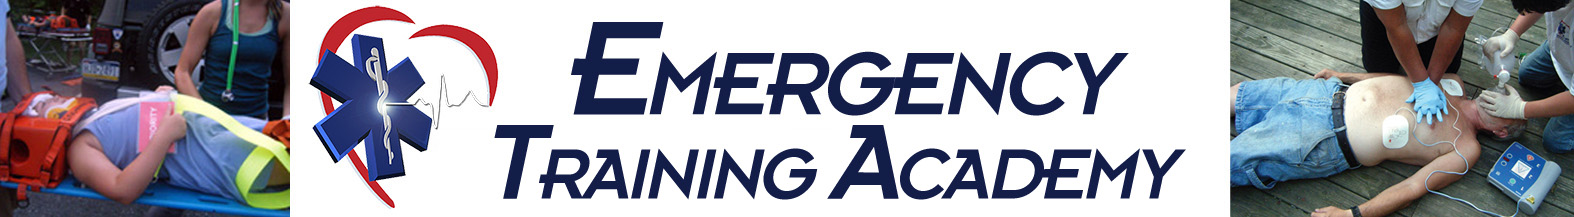 Hybrid EMT, EMR, CPA & First Aid Training